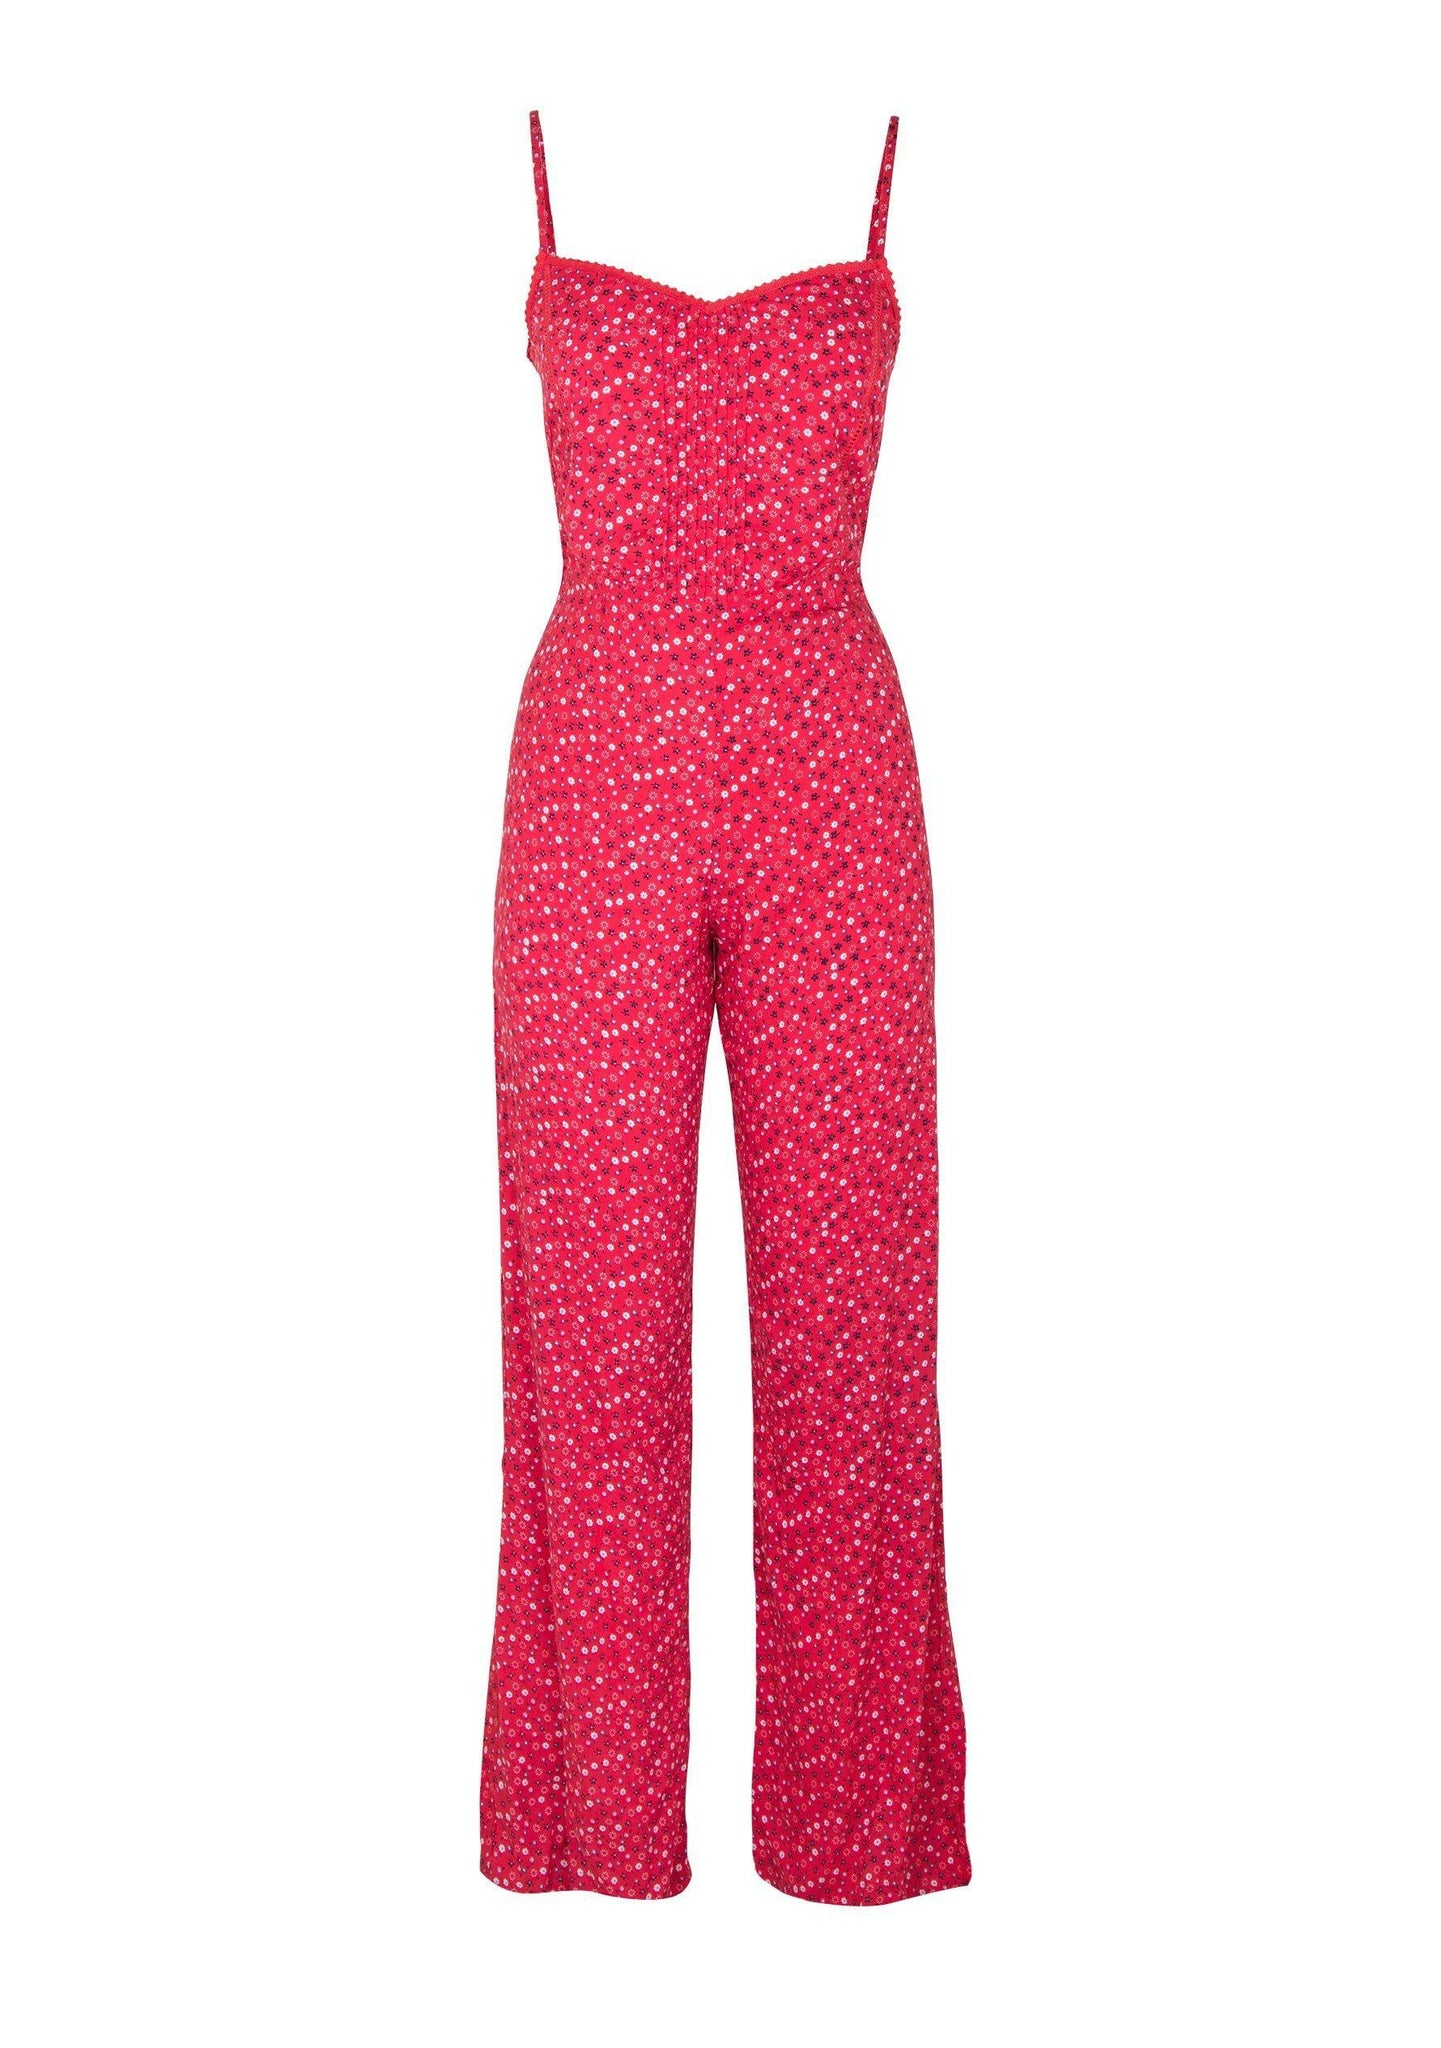 374d6e03ac Daphne Pintuck Jumpsuit from Auguste the Label